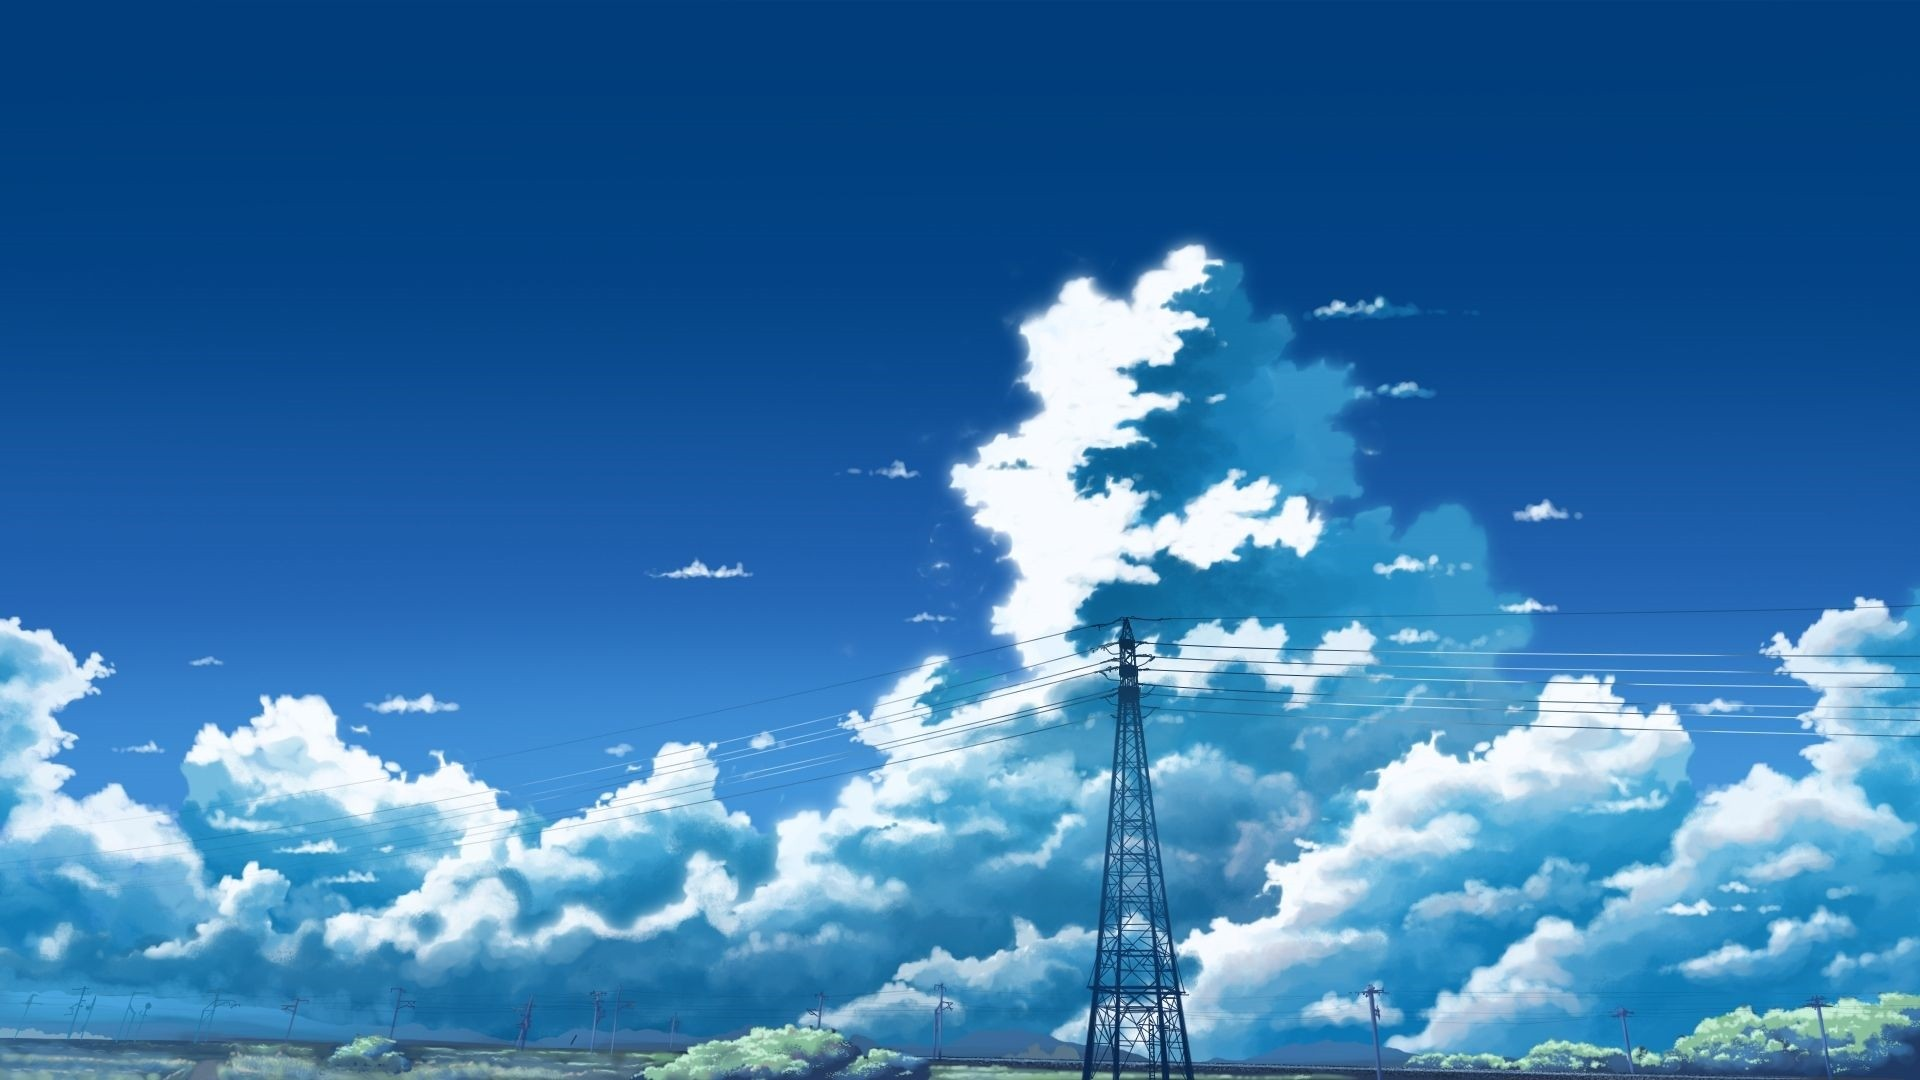 Anime Clouds Download Wallpaper